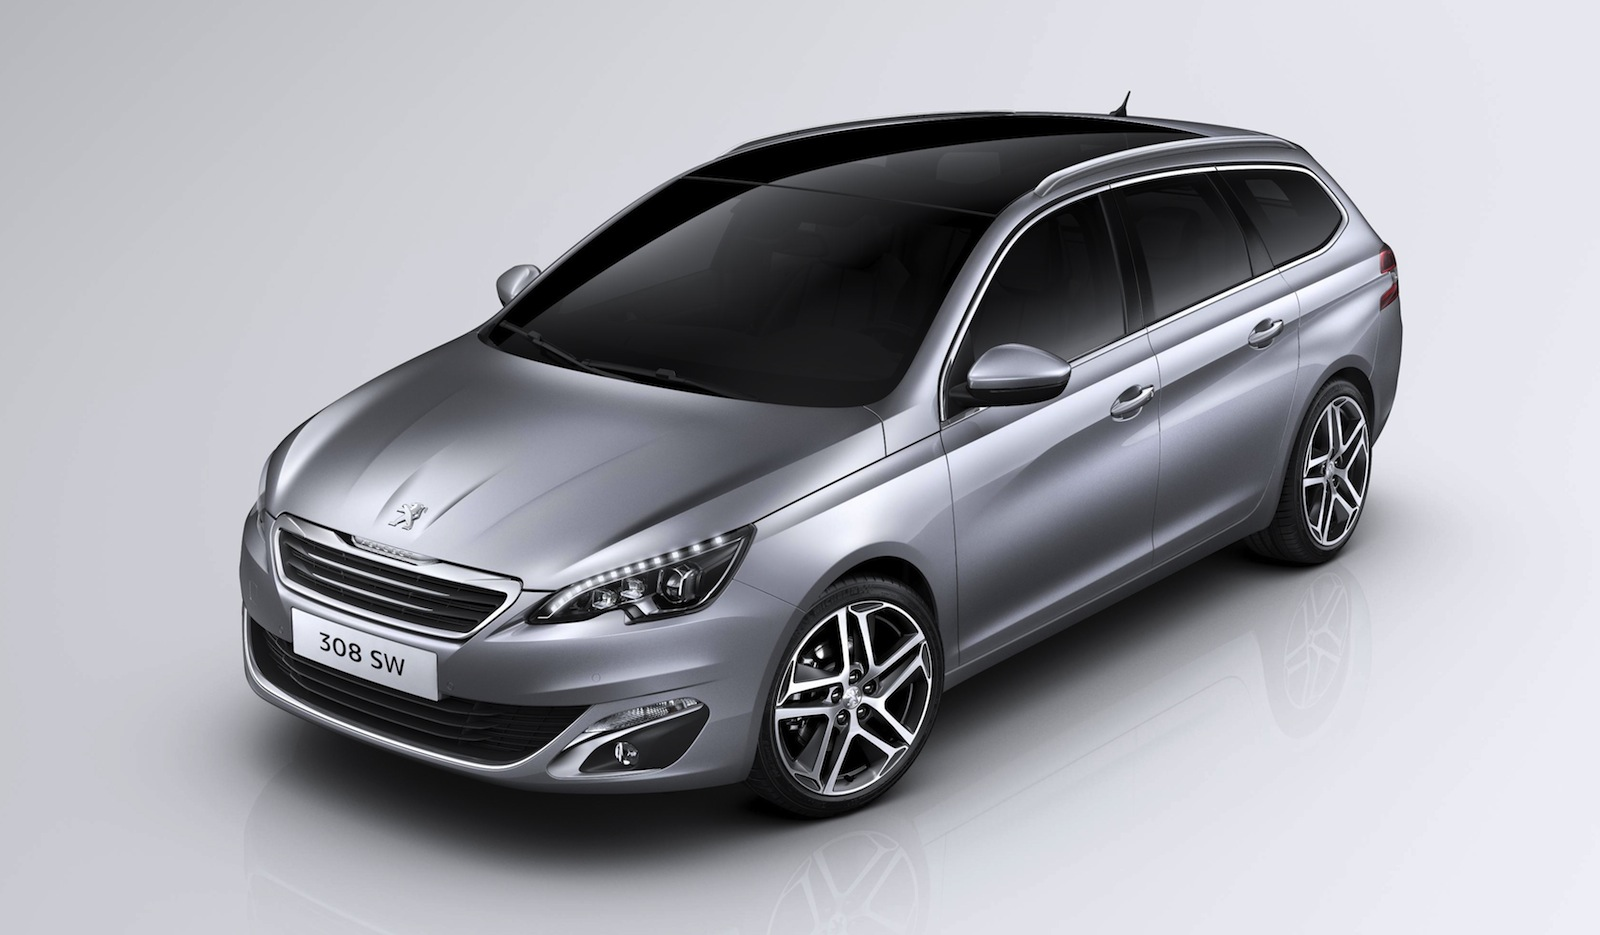 Peugeot 308 Sw Compact Wagon Revealed Photos 1 Of 10